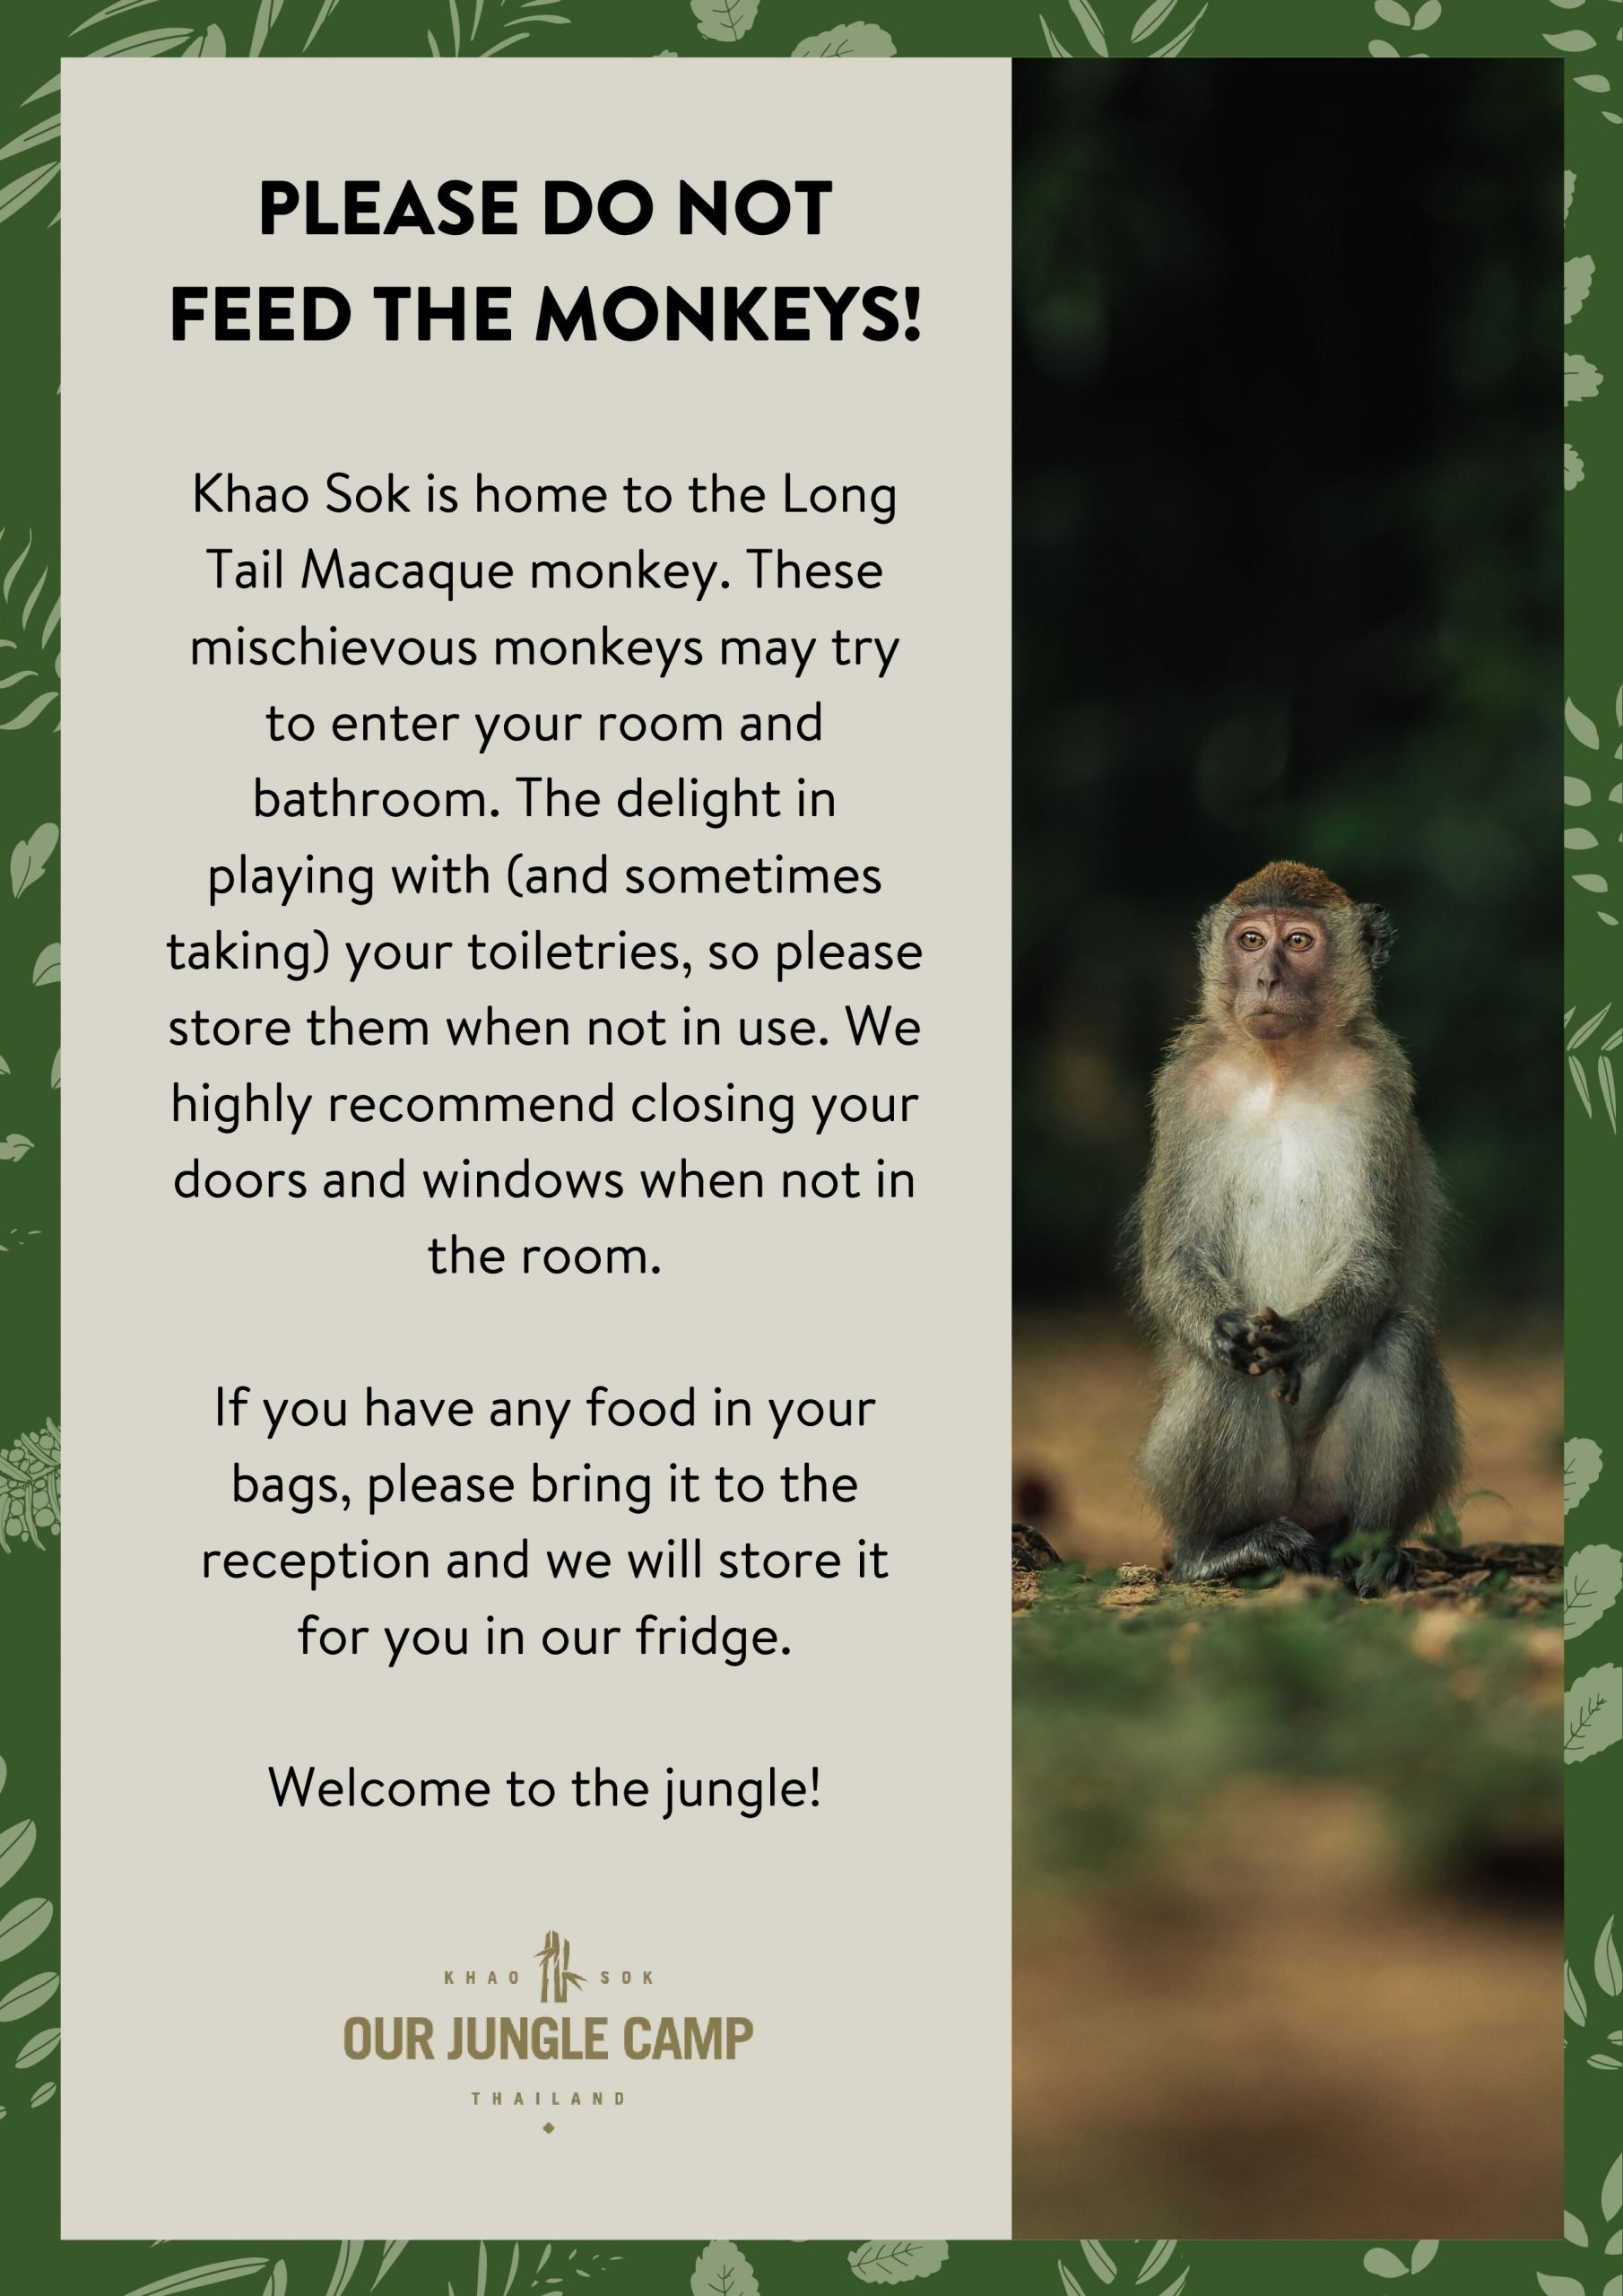 We ask you not to feed the monkeys at the resort and urge you to keep your distance and to close your doors and windows during dawn and dusk hours as Macaque Monkey pays frequent visits to our resort and very much enjoy our guest's food and hygienic products.